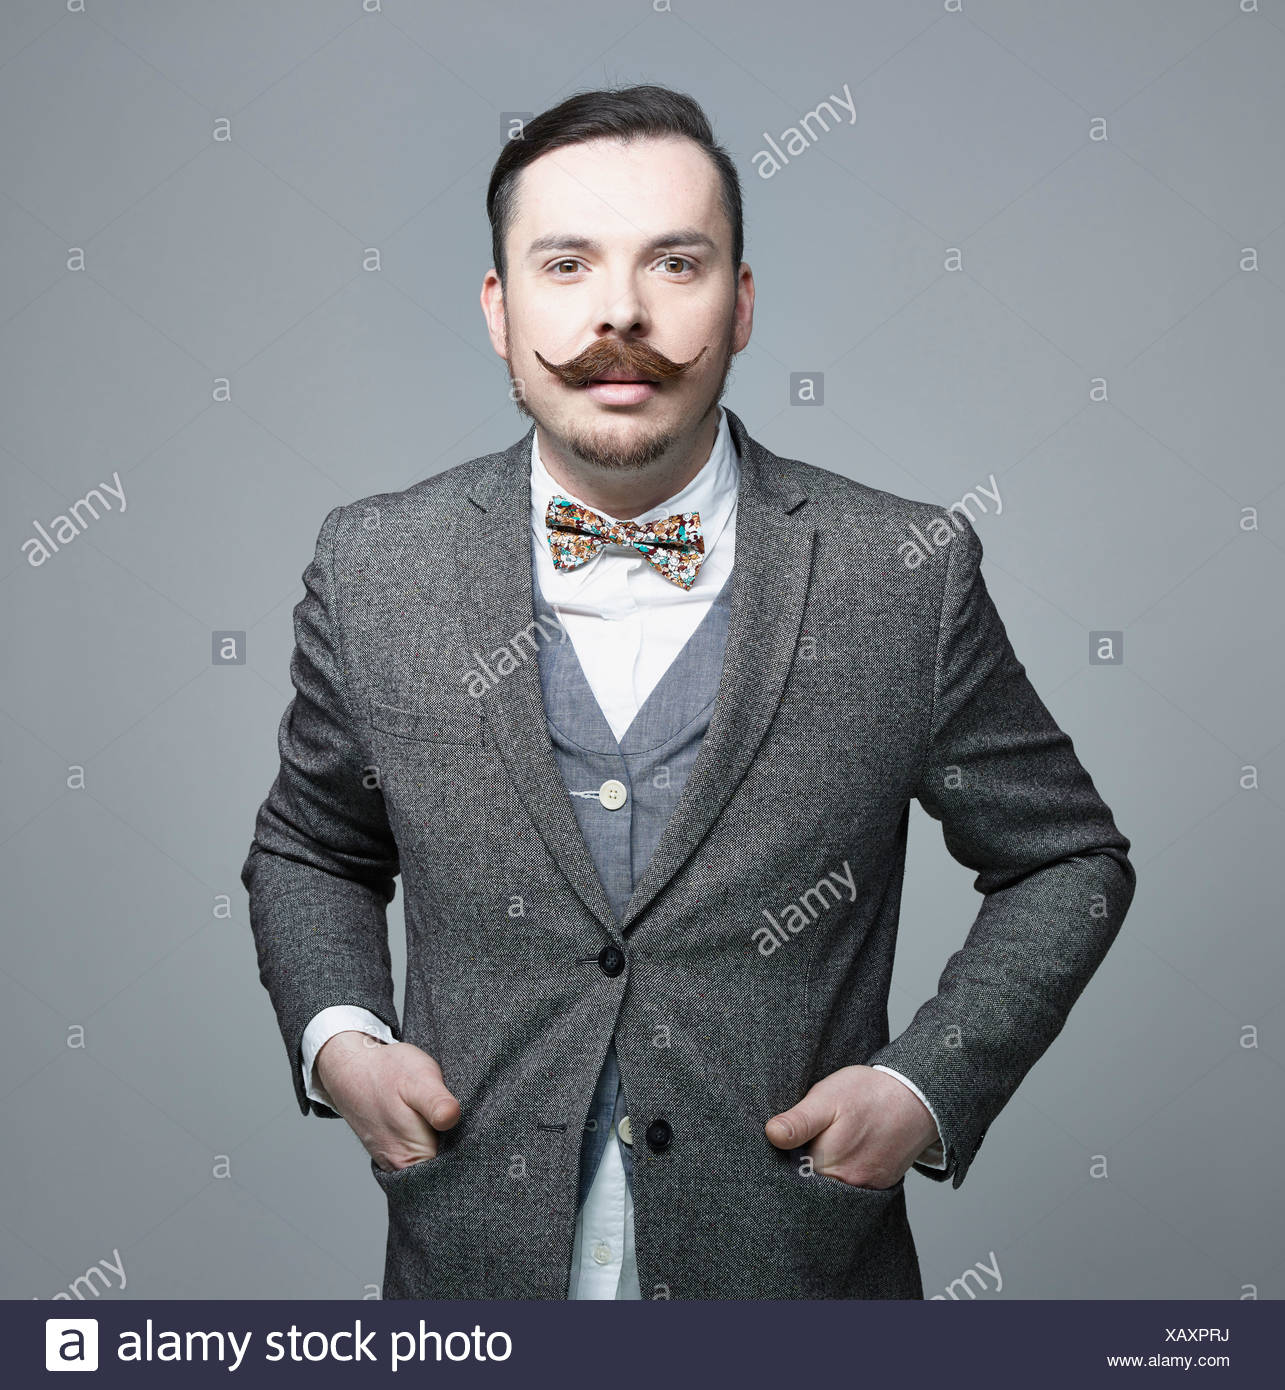 Portrait of mid adult man against grey background, smiling - Stock Image